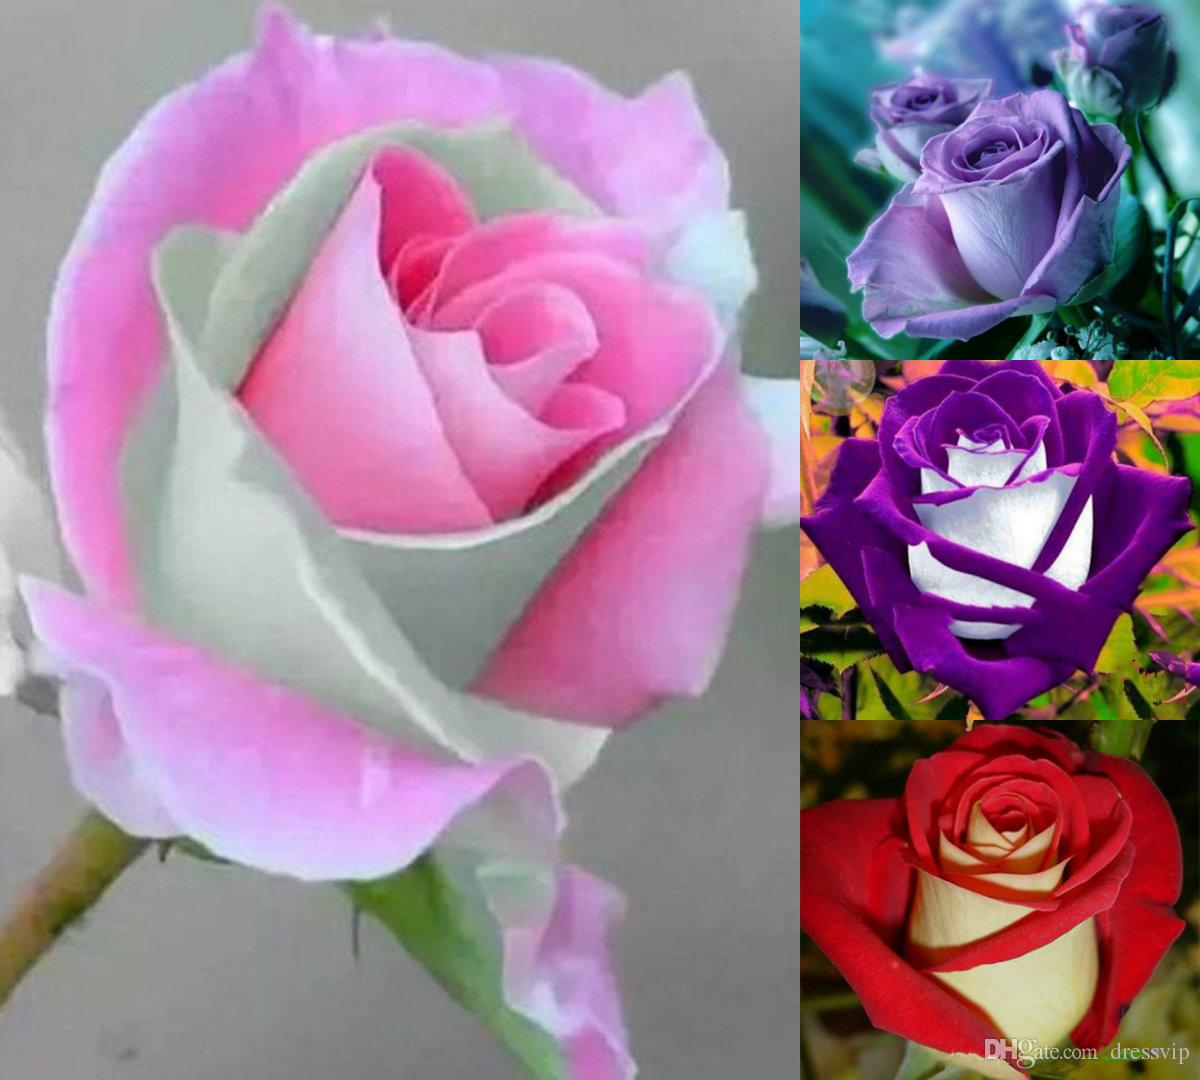 Sale Rainbow Rose Seeds 100 Seeds Package Color Garden Plants